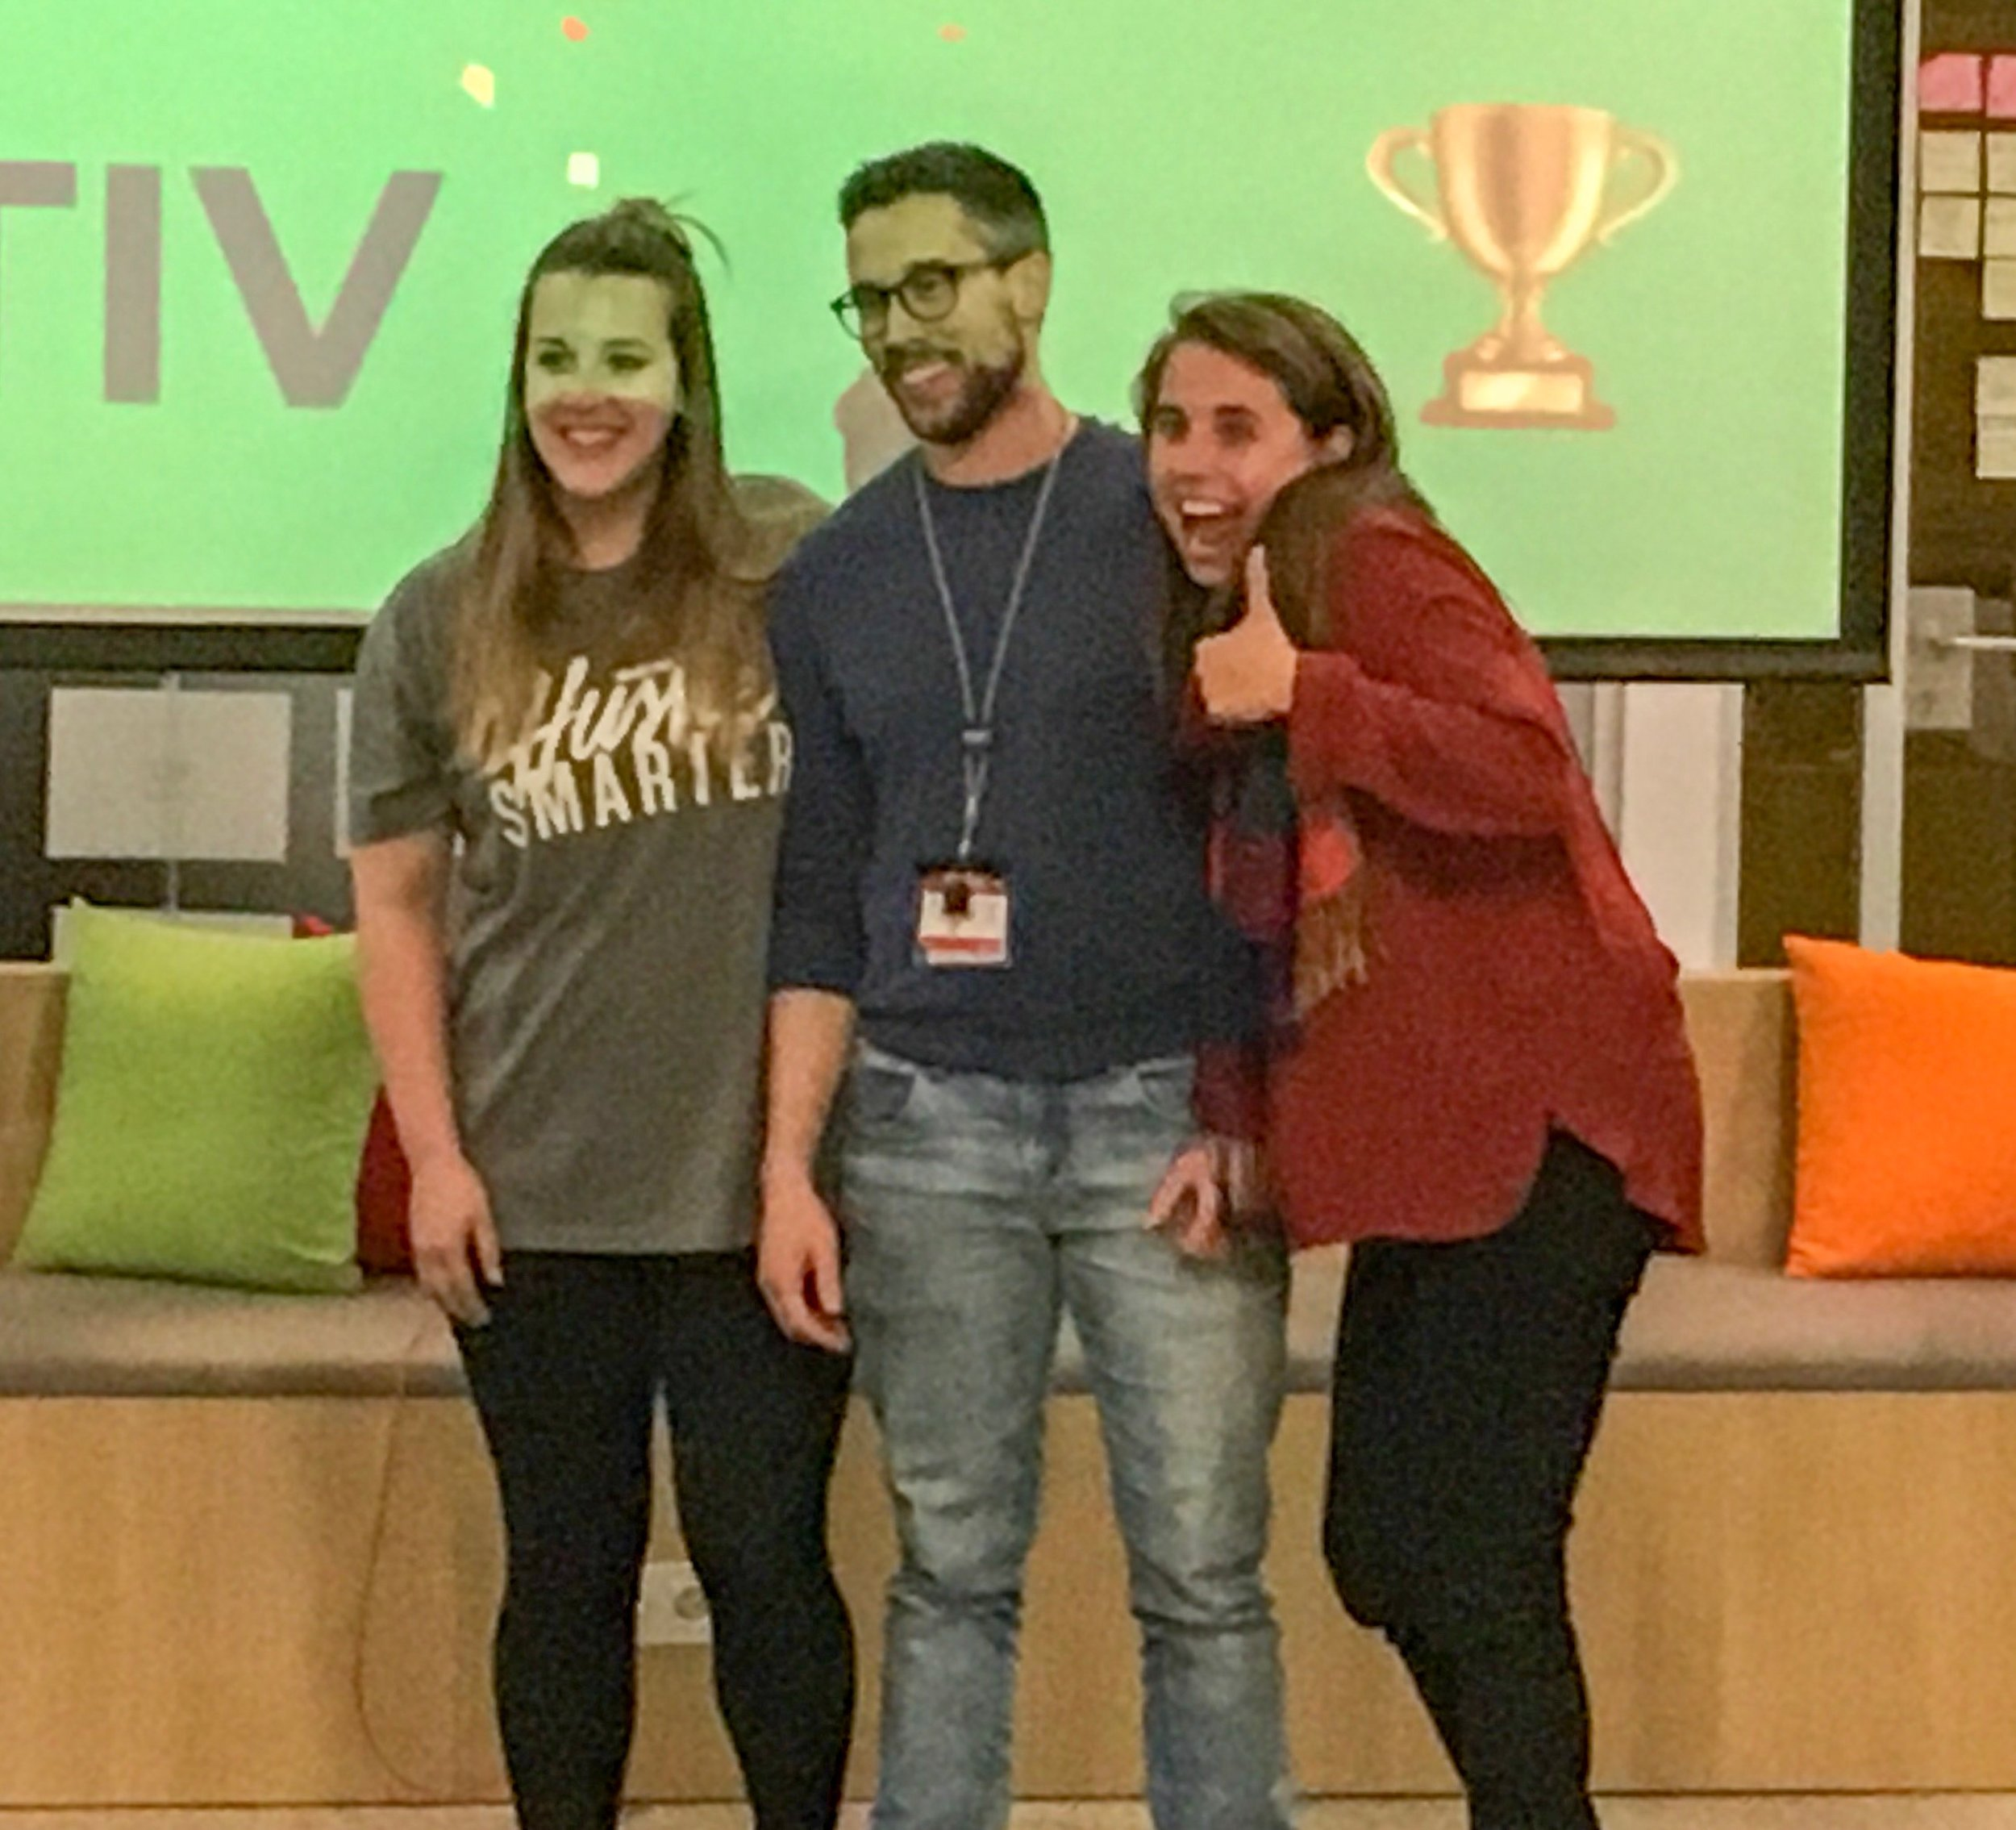 Coactiv for the (2nd place) win!